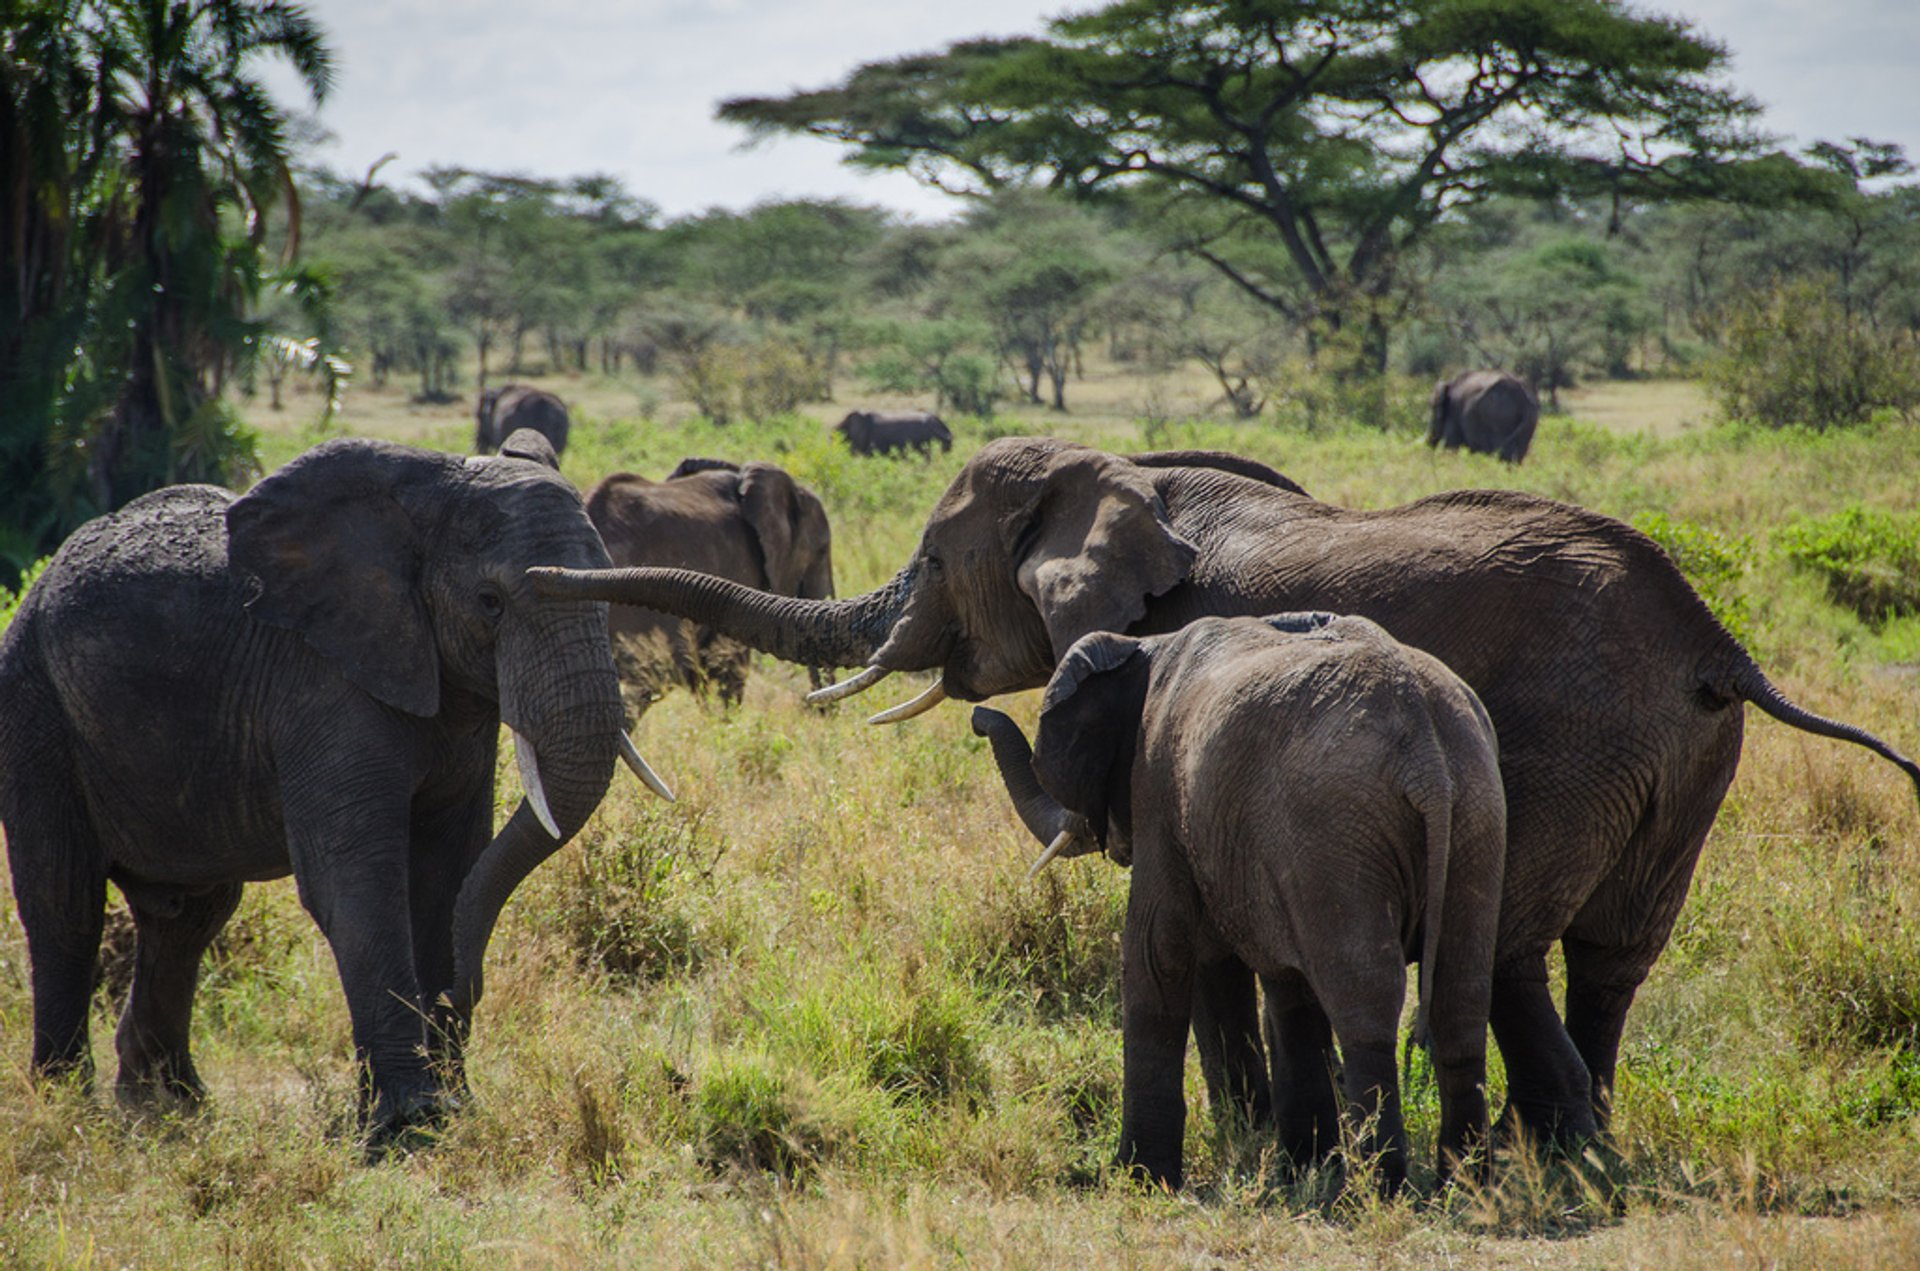 Herd of elephants in the Serengeti 2019